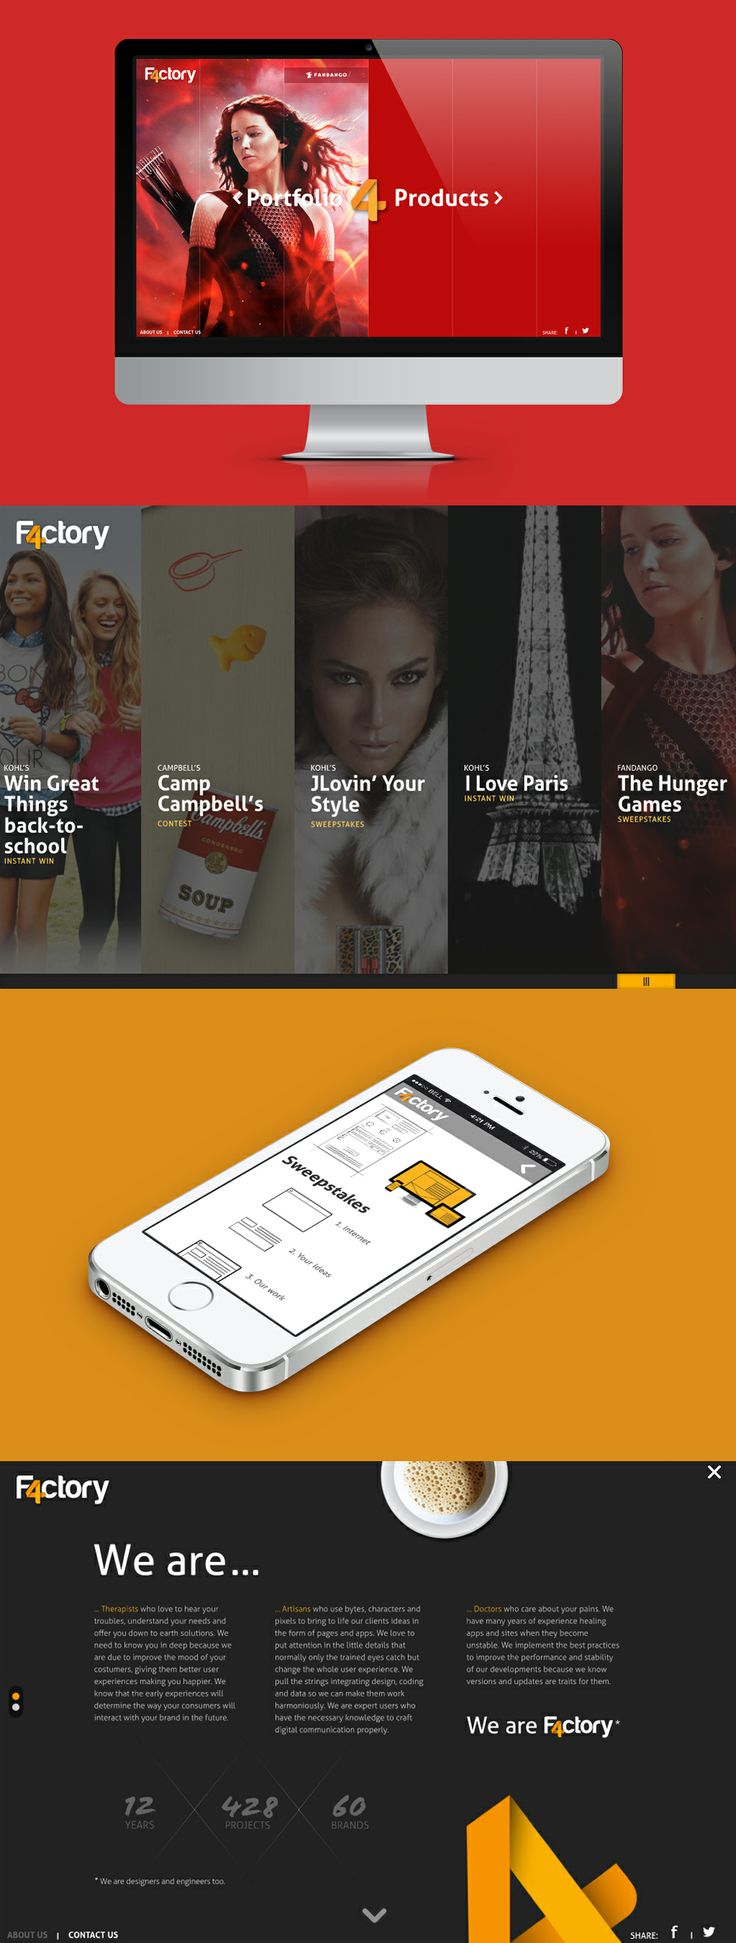 F4ctory website #web_design #digital_agency #mobile_apps